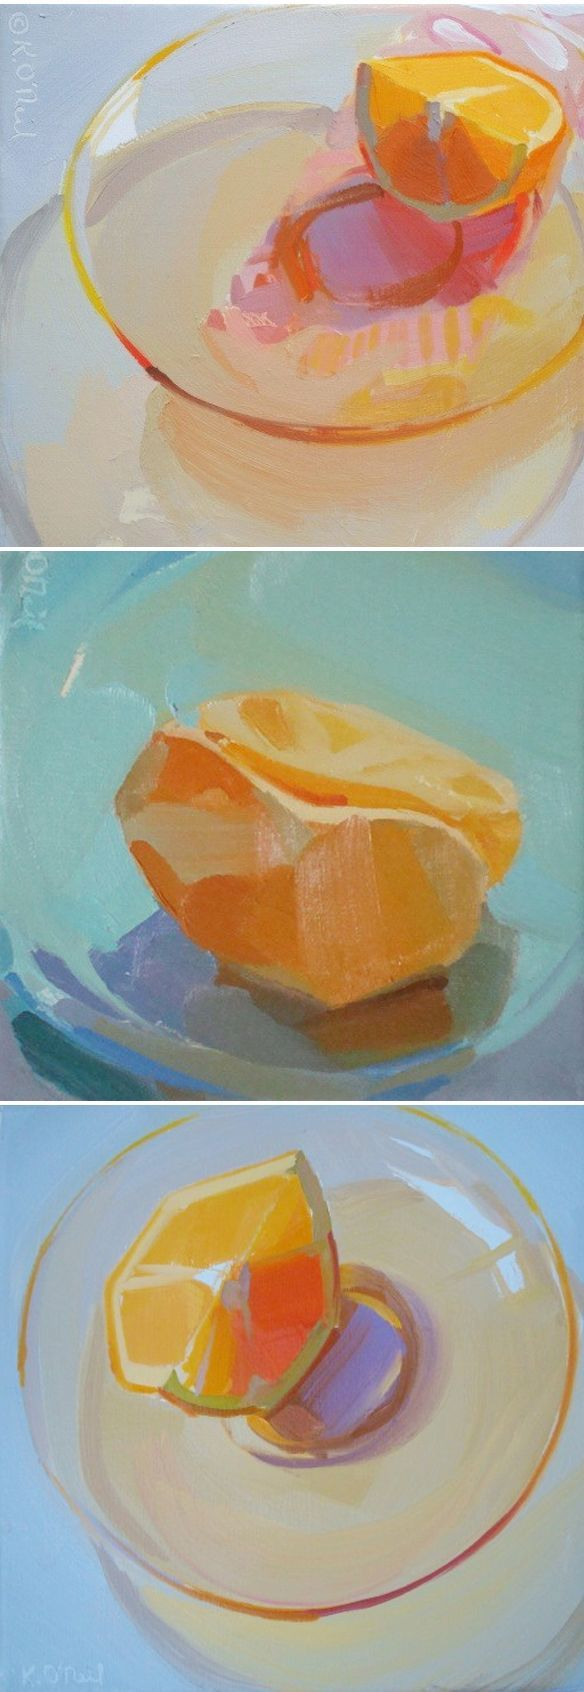 """Ah, nothing says """"Happy Monday morning"""" quite like a bunch of fresh 'n juicy oranges! Mmmm, now I want an orange AND one of these paintings by Woodstock, New York based artist/educator Karen O'Neil. I"""